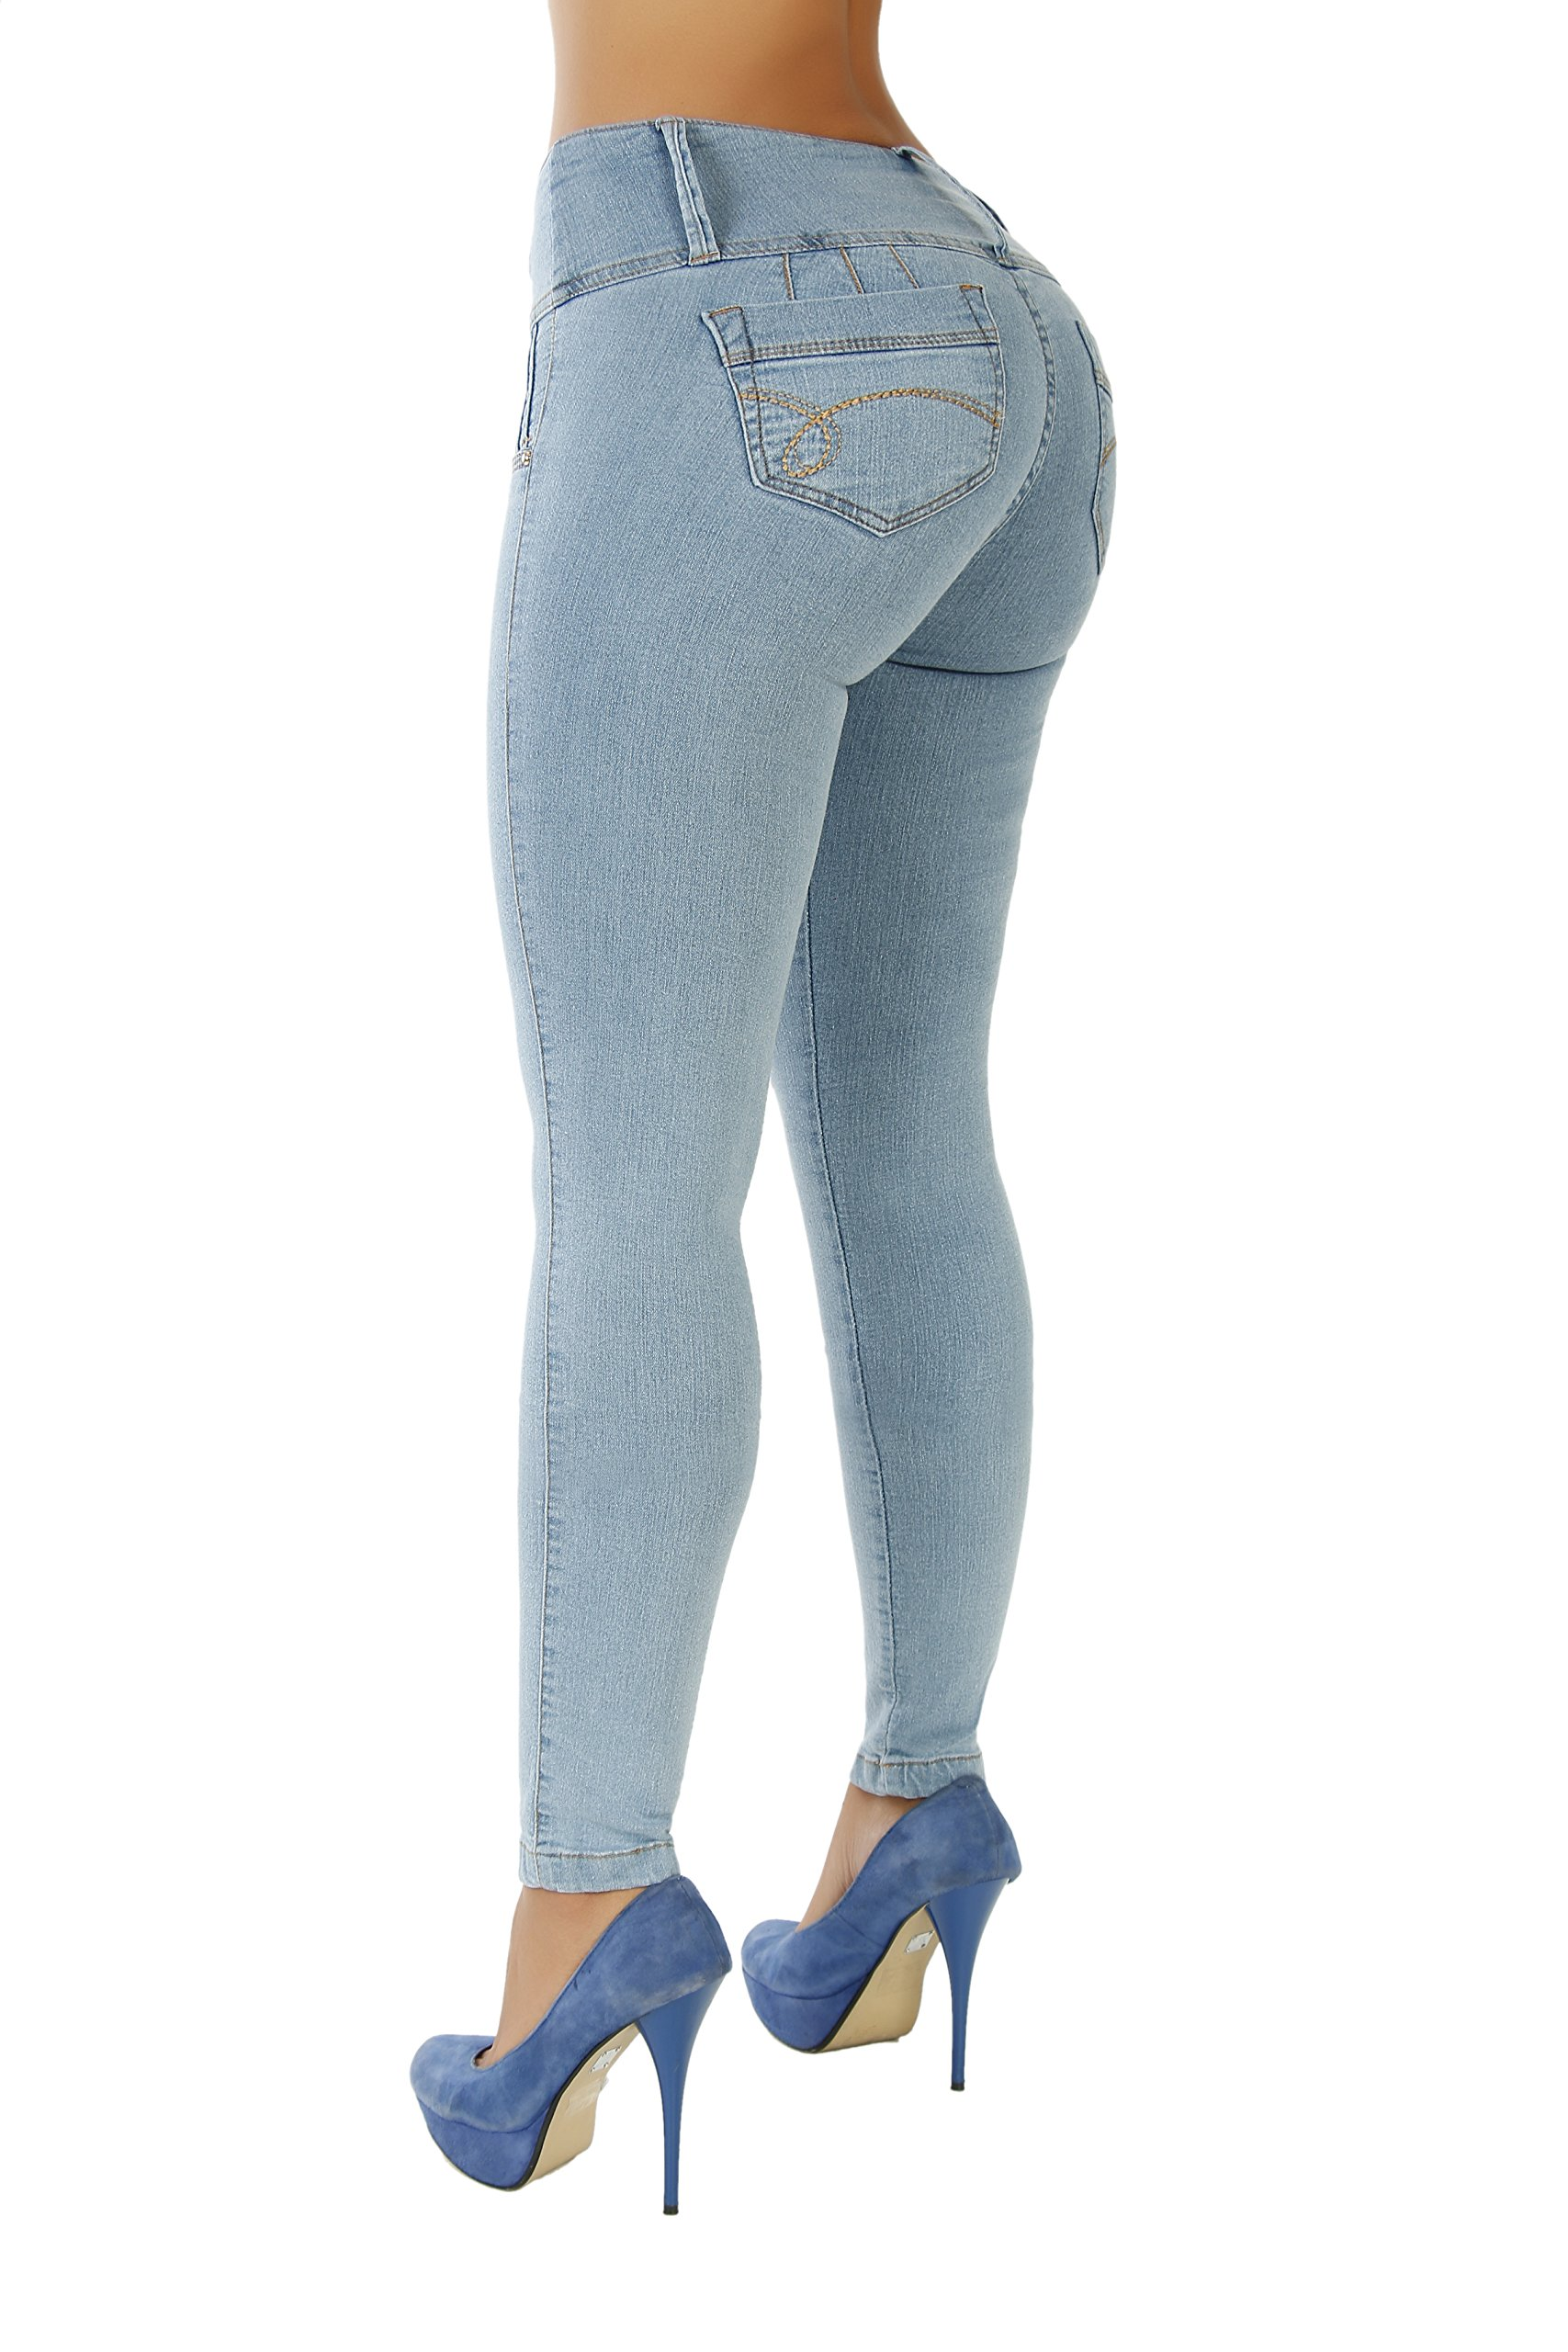 Curvify High Waisted Butt Lifting Slimming Jeans for Women - Skinny Stretch Jean 766(766, Sky Blue, 15)